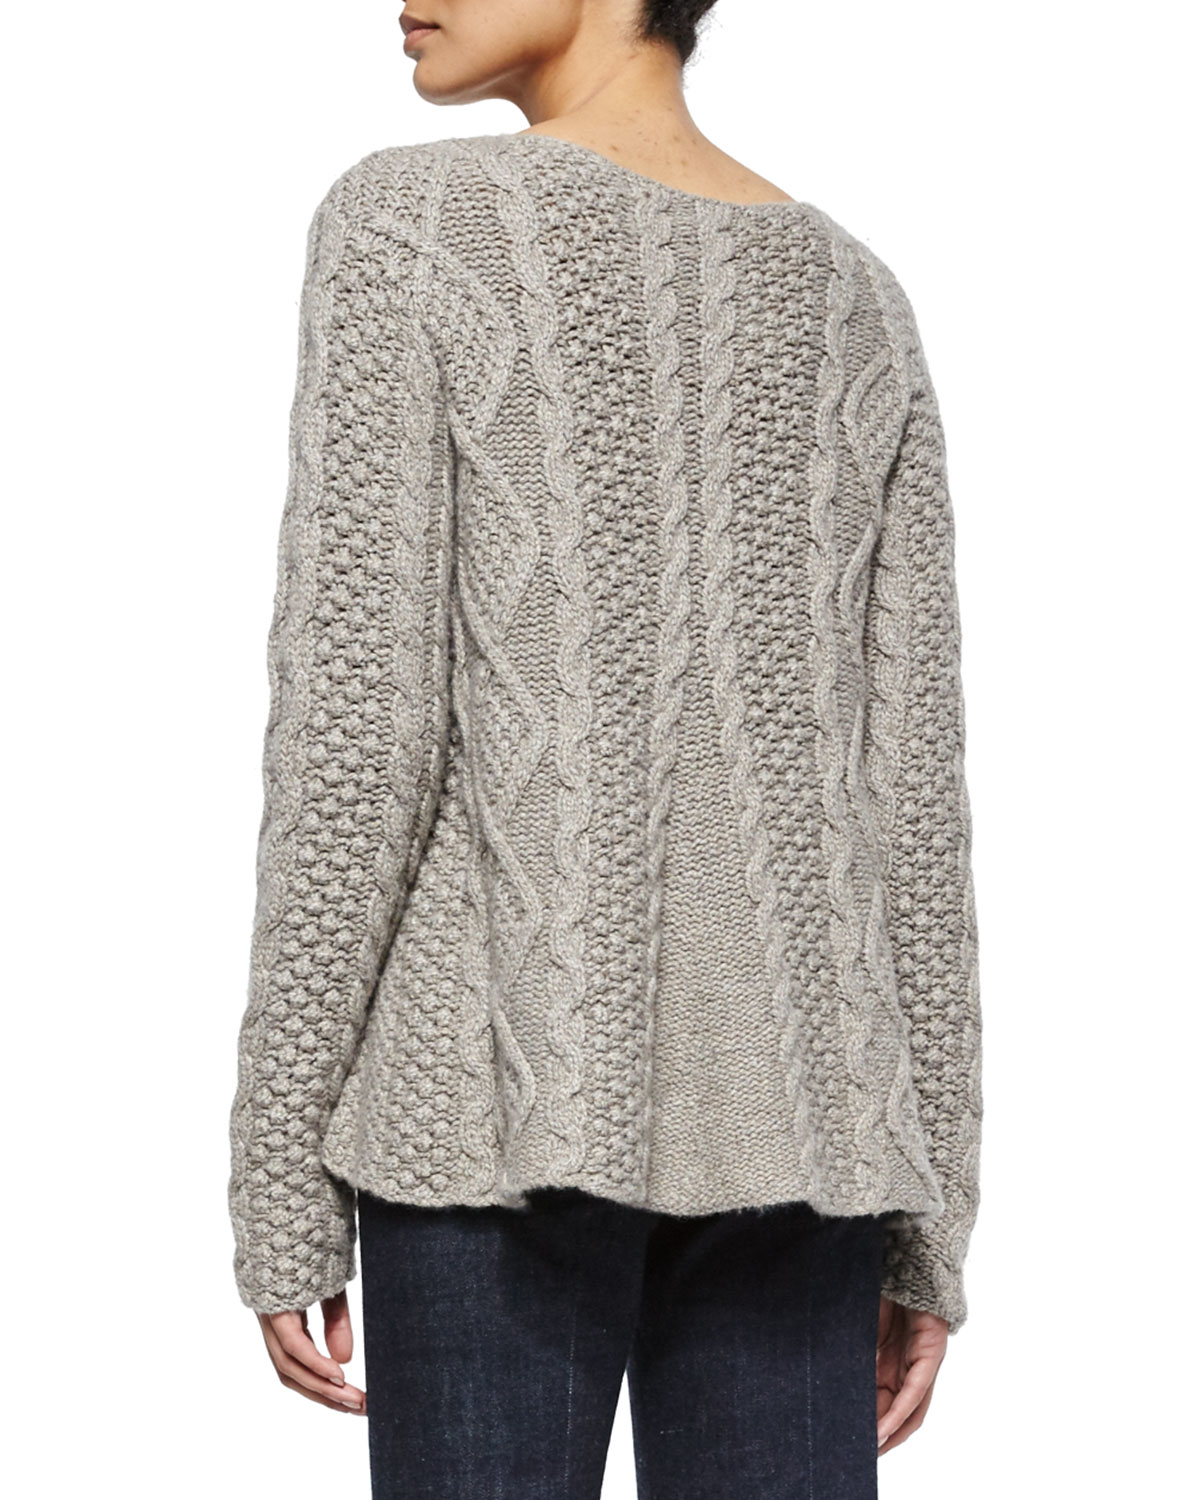 Shop Women's Sweaters at r0nd.tk including cashmere, cardigans & pullovers in the latest styles & timeless designs. Free shipping on orders over $ Collection cable-knit mockneck sweater in dusty azalea $ QUICK SHOP. Collection cable-knit mockneck sweater $ available in 3 colors.